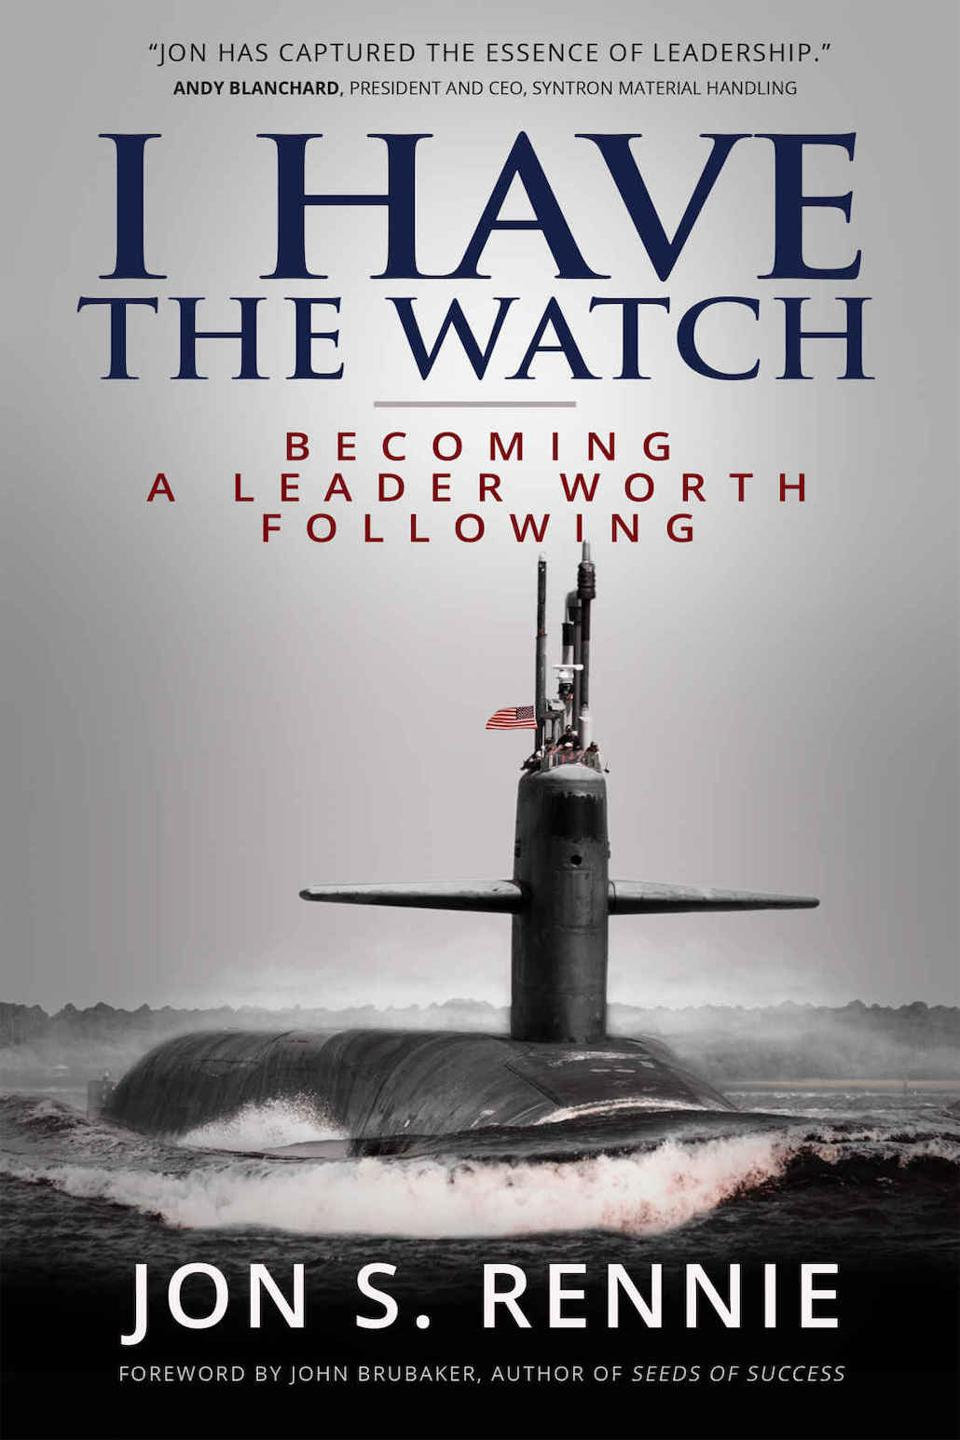 I Have the Watch: Becoming a Leader Worth Following by Jon S. Rennie